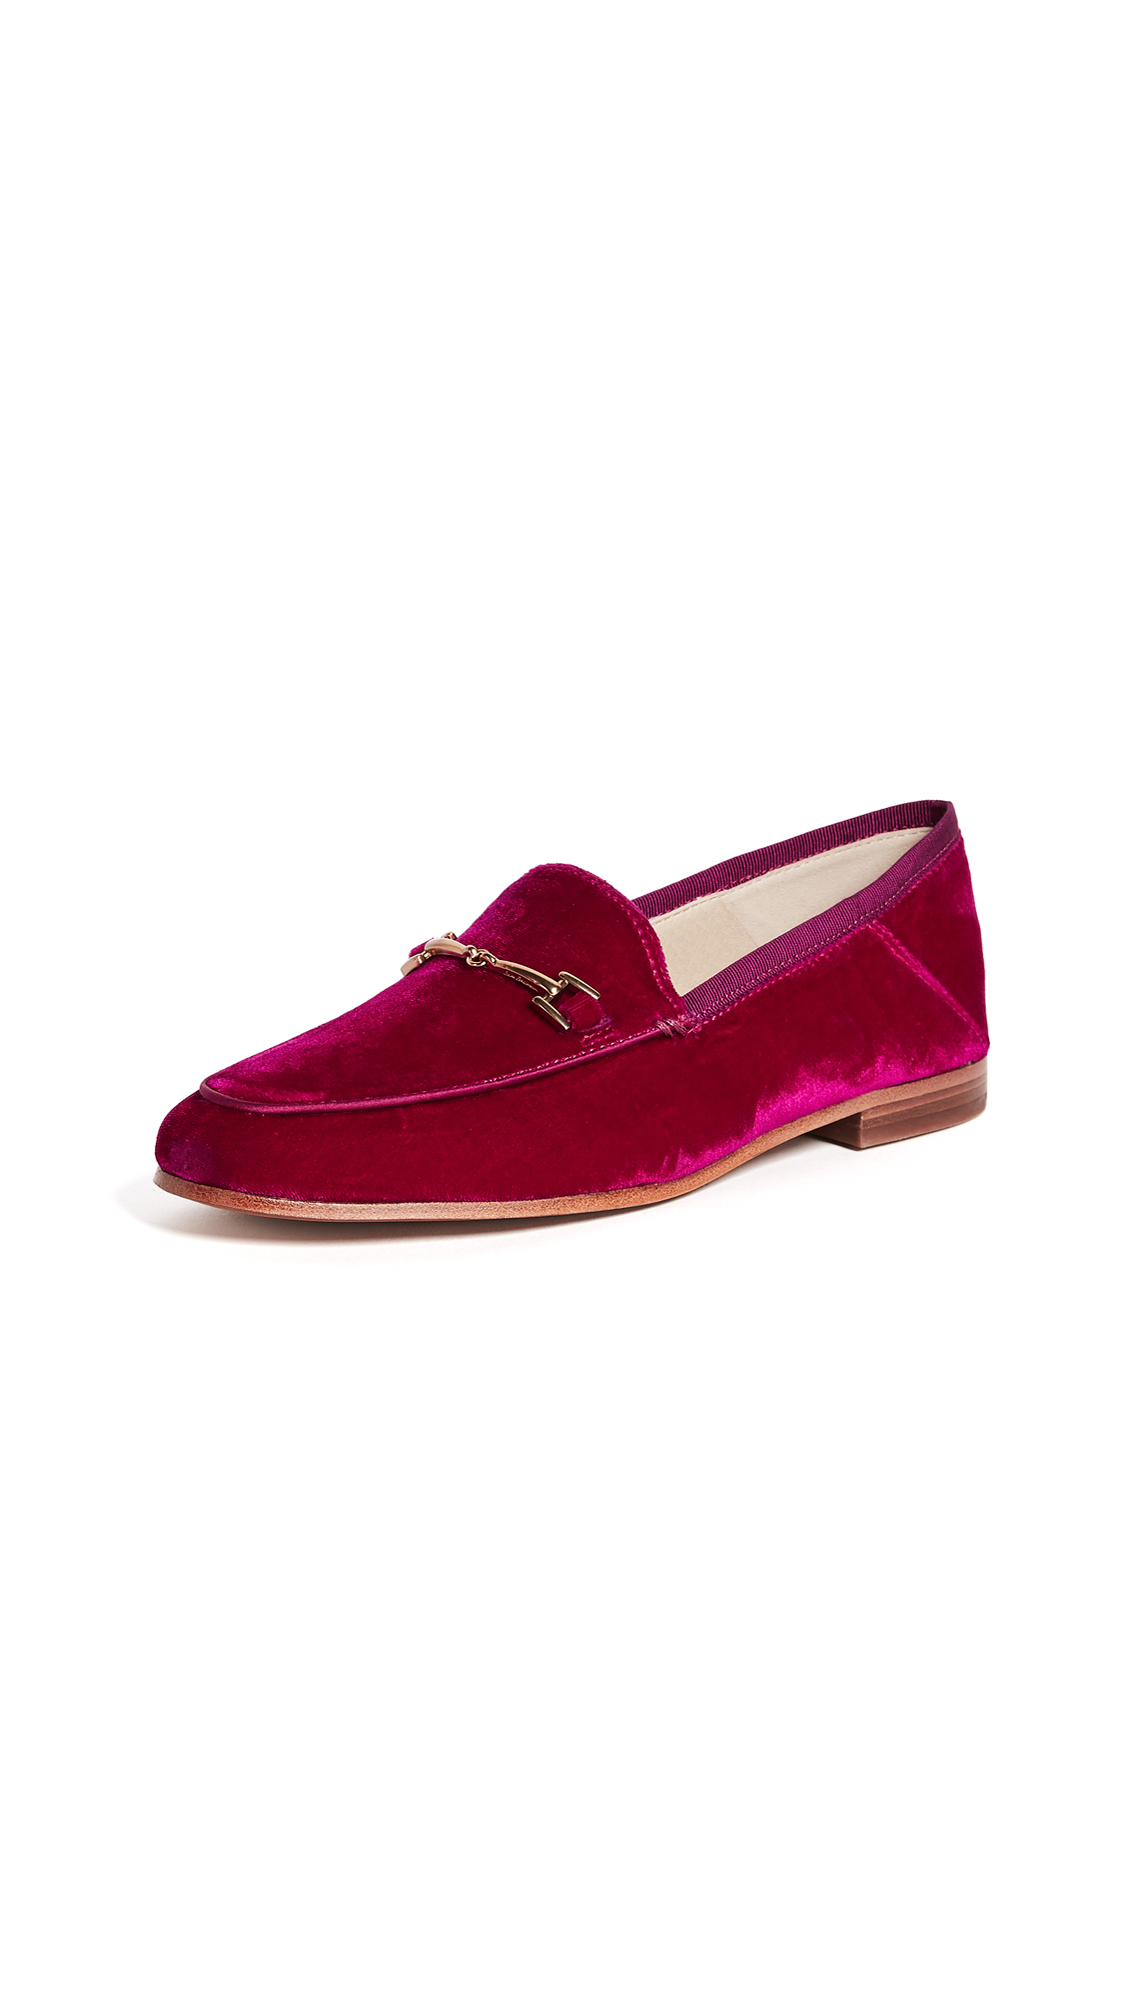 Sam Edelman Loraine Loafers - Virtual Pink